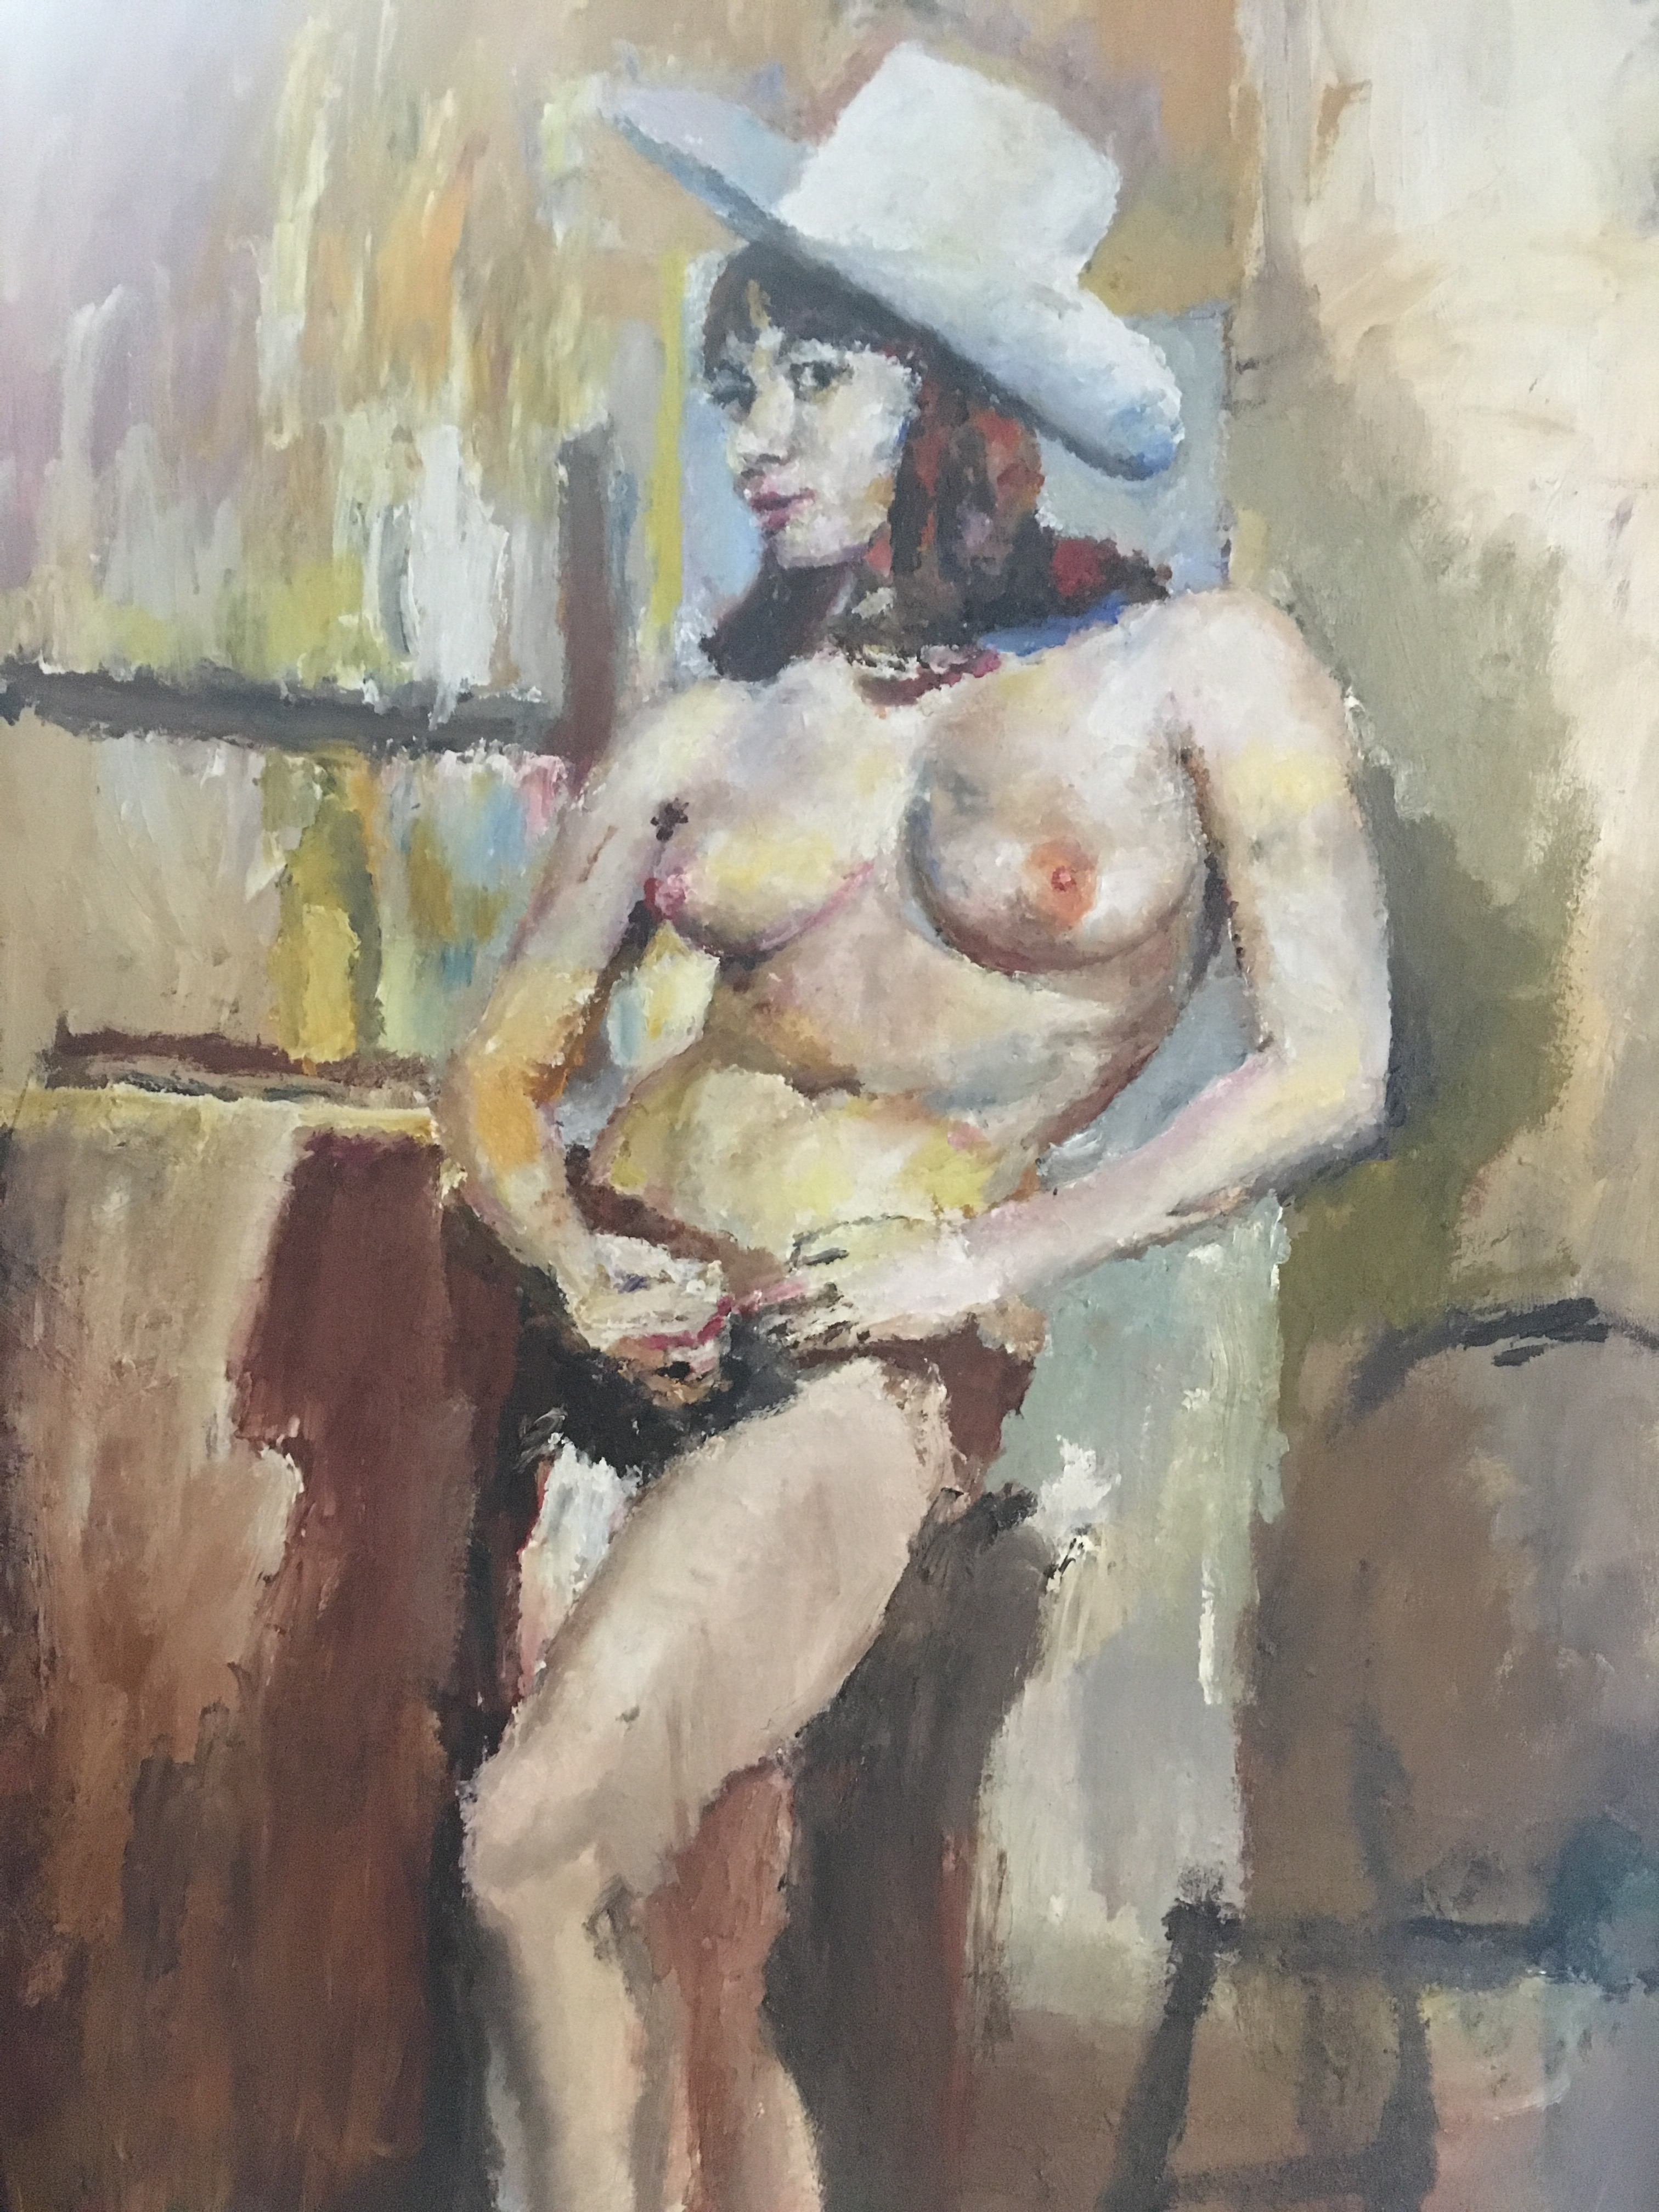 Oil painting by Jesse Edwards, nude oil painting, nude cowgirl oil painting done